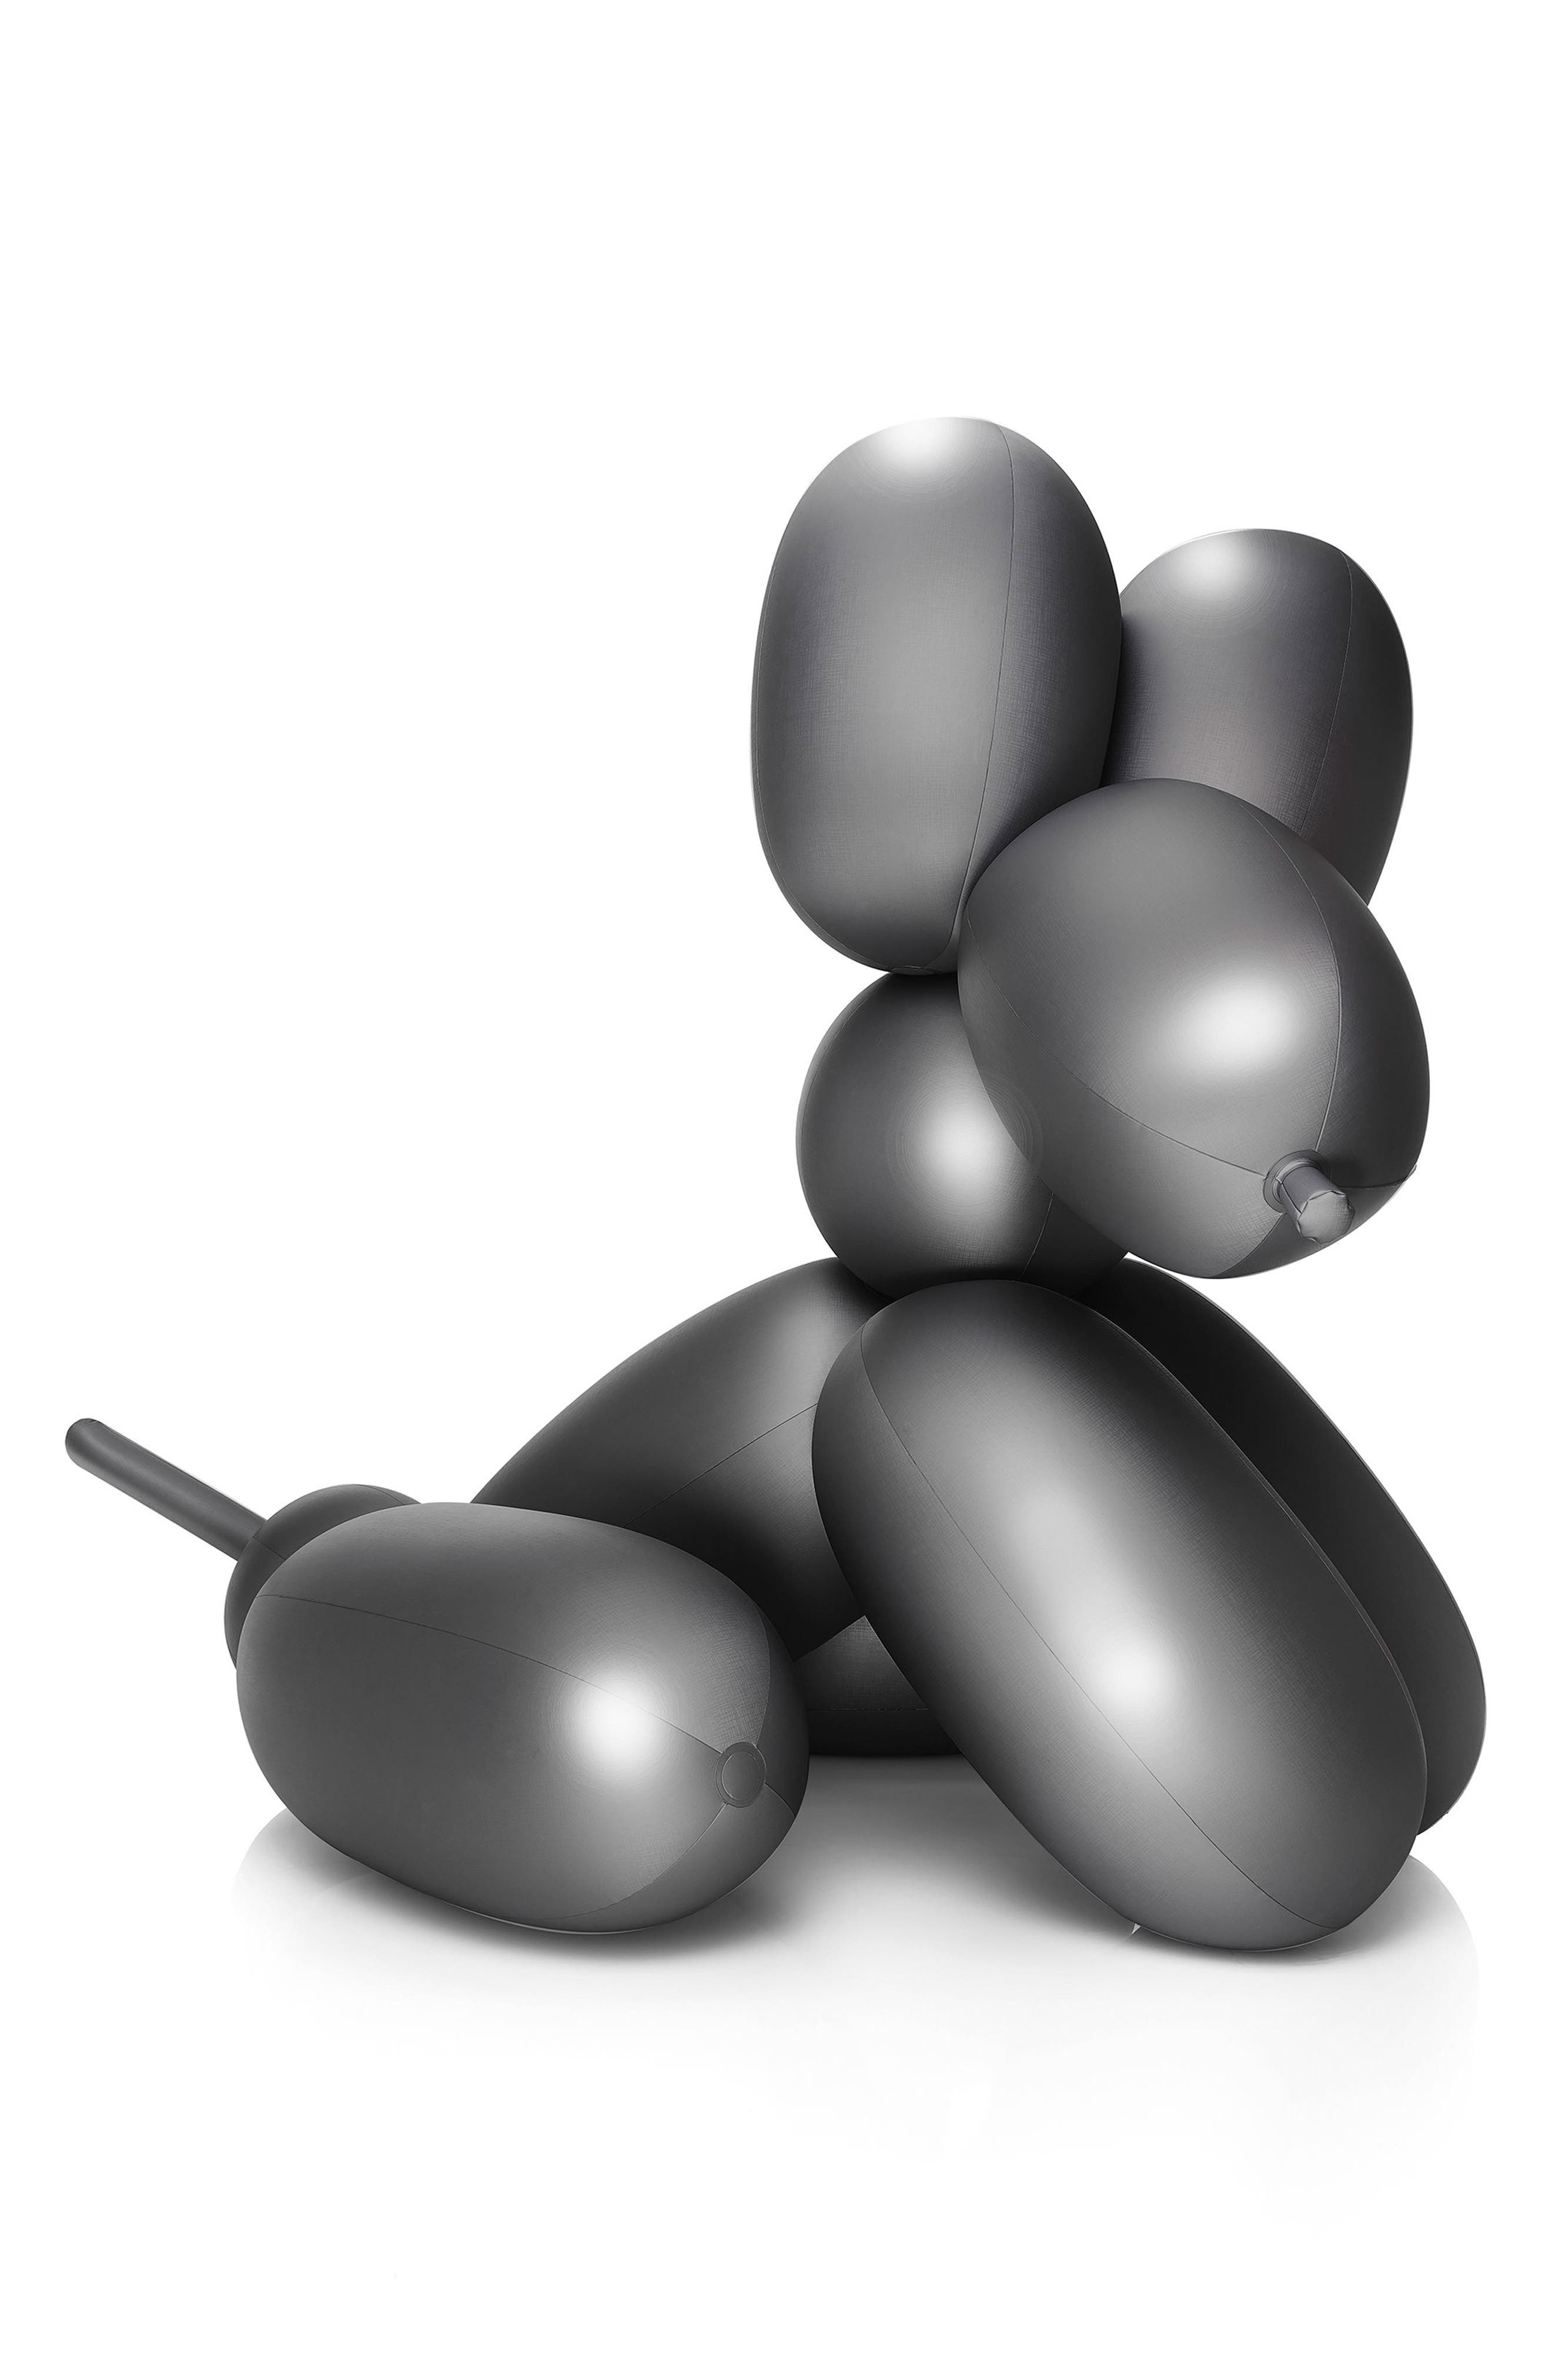 Big Dog Inflatable Decoration,                             Main thumbnail 1, color,                             Anthracite